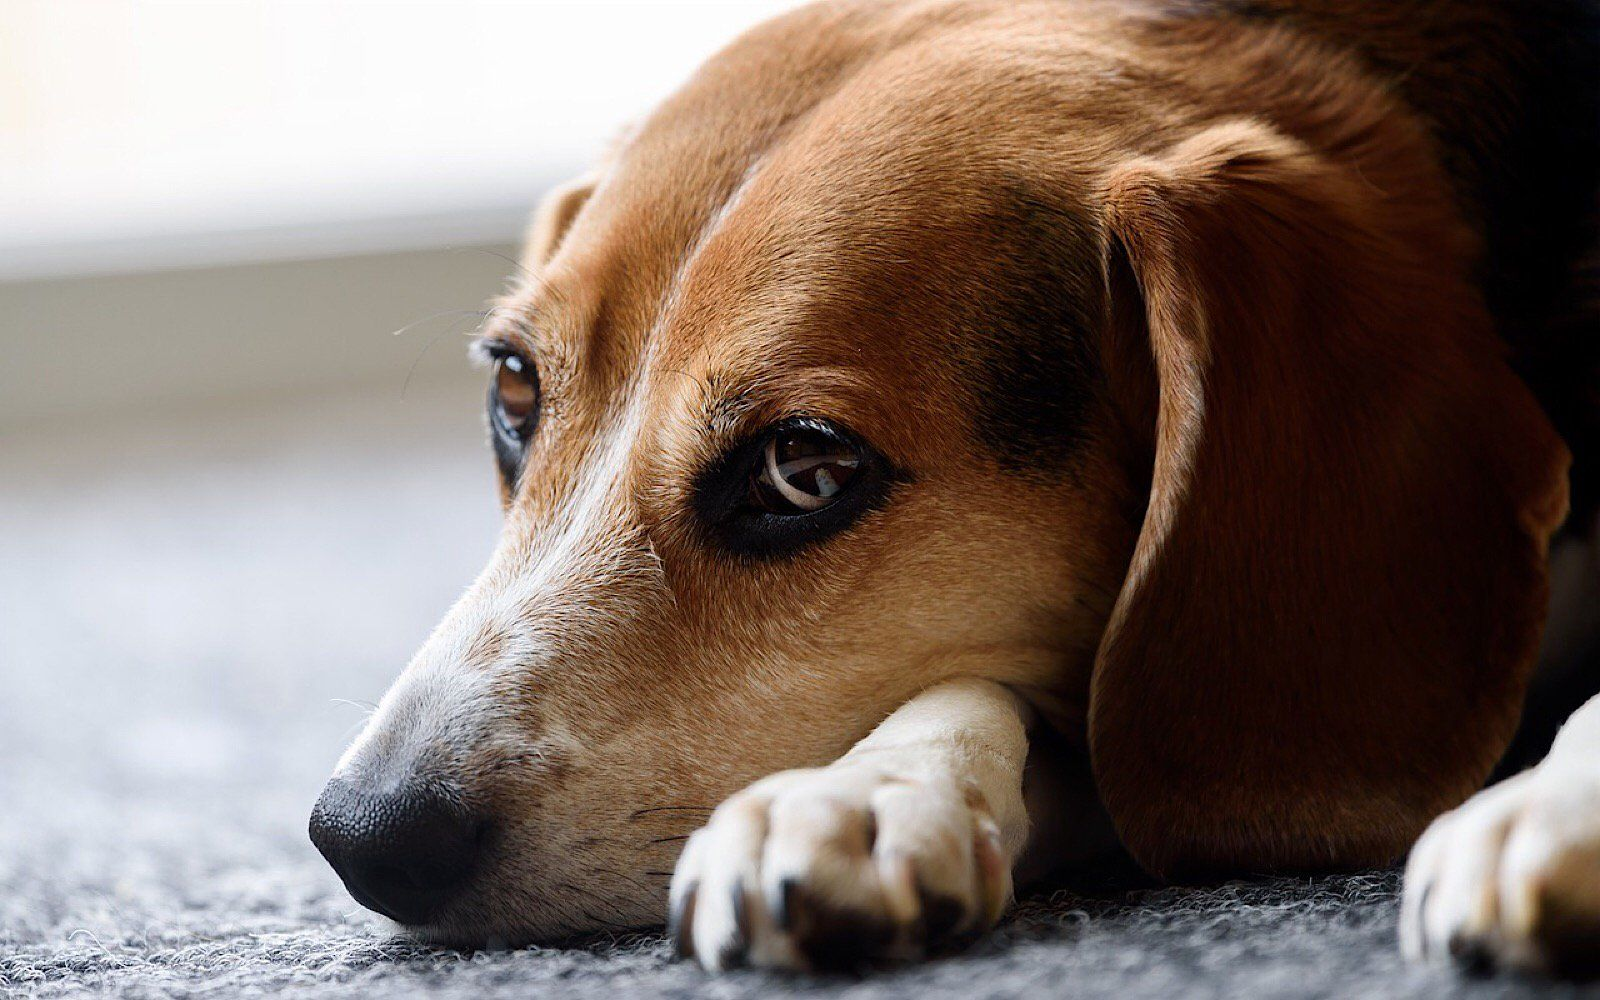 Beagles Have Holes Drilled In Their Heads At This Horrific